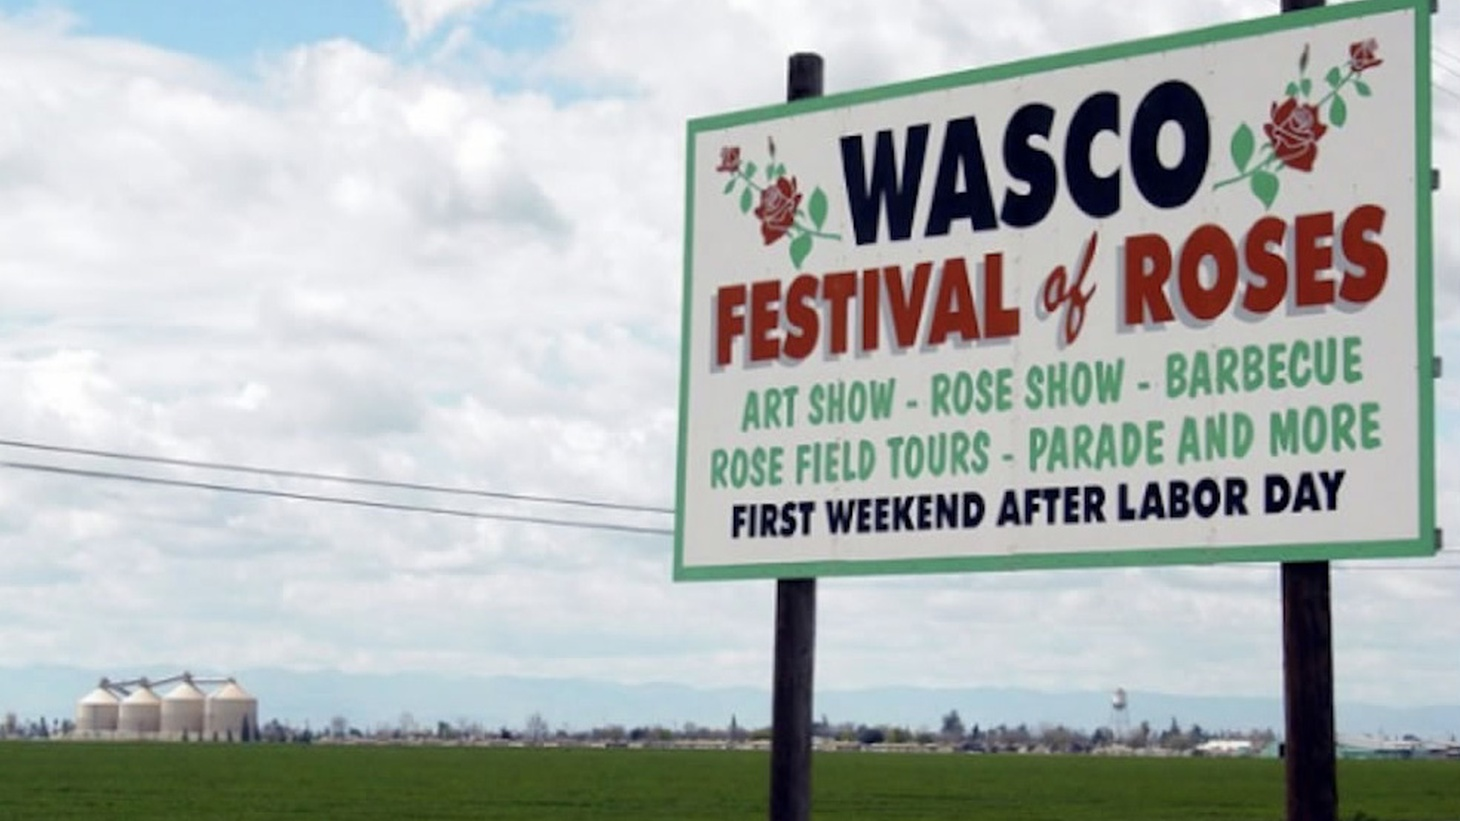 High-speed rail is still a ways off in California. But if, and when, the bullet train is up-and-running, plans call for the southern end of the line to be in the city of Wasco. Zócalo columnist Joe Mathews says Wasco is a nice town, and he helps us find it on the map.